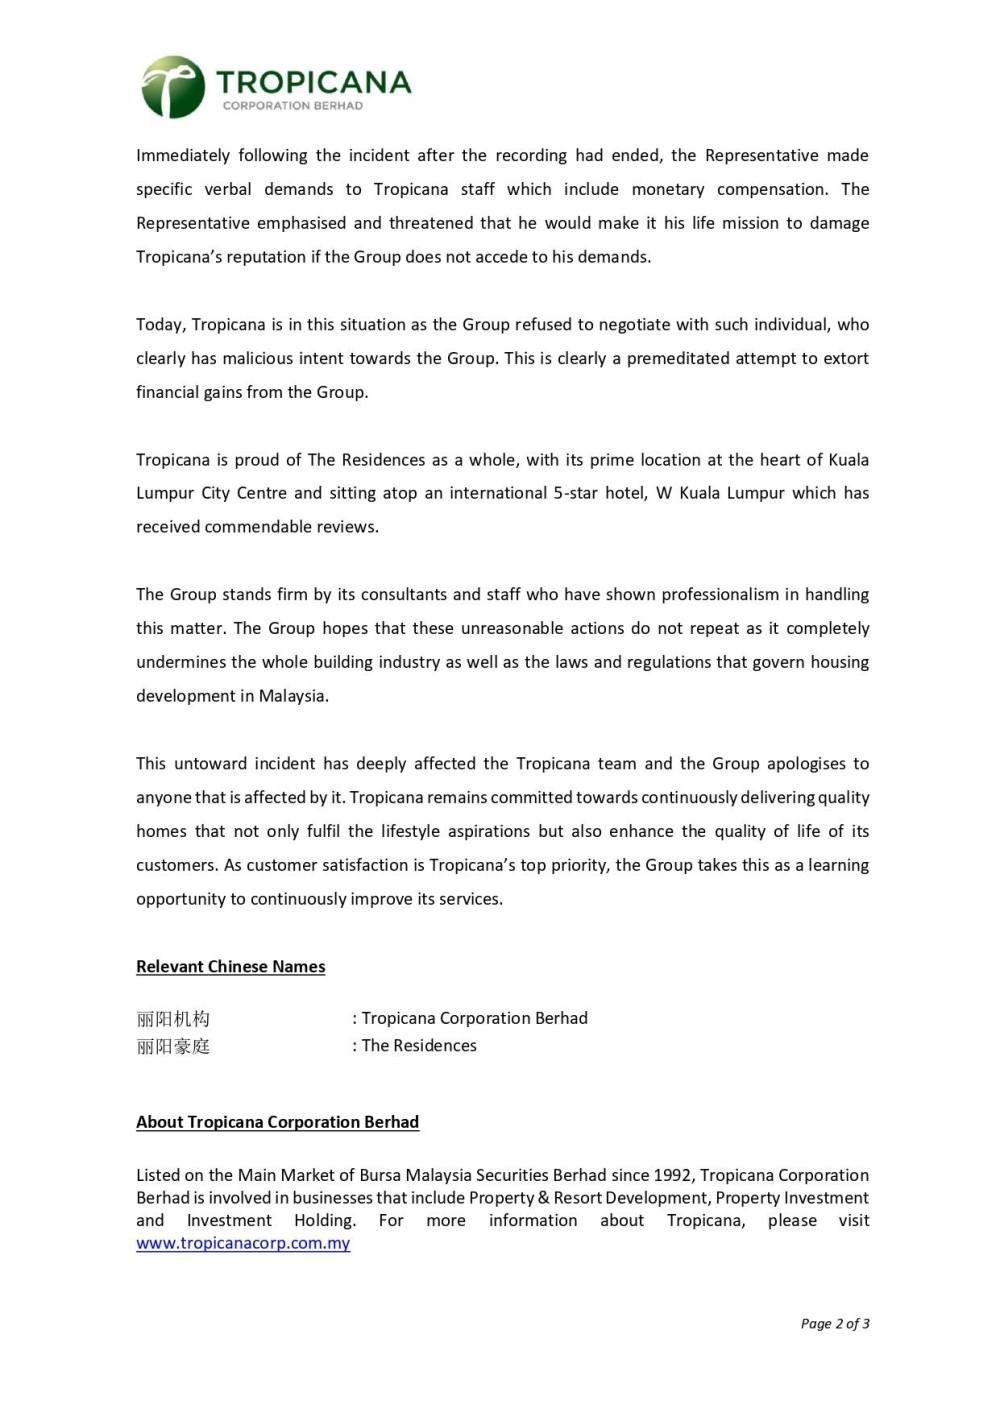 Tropicana press release on the controversy